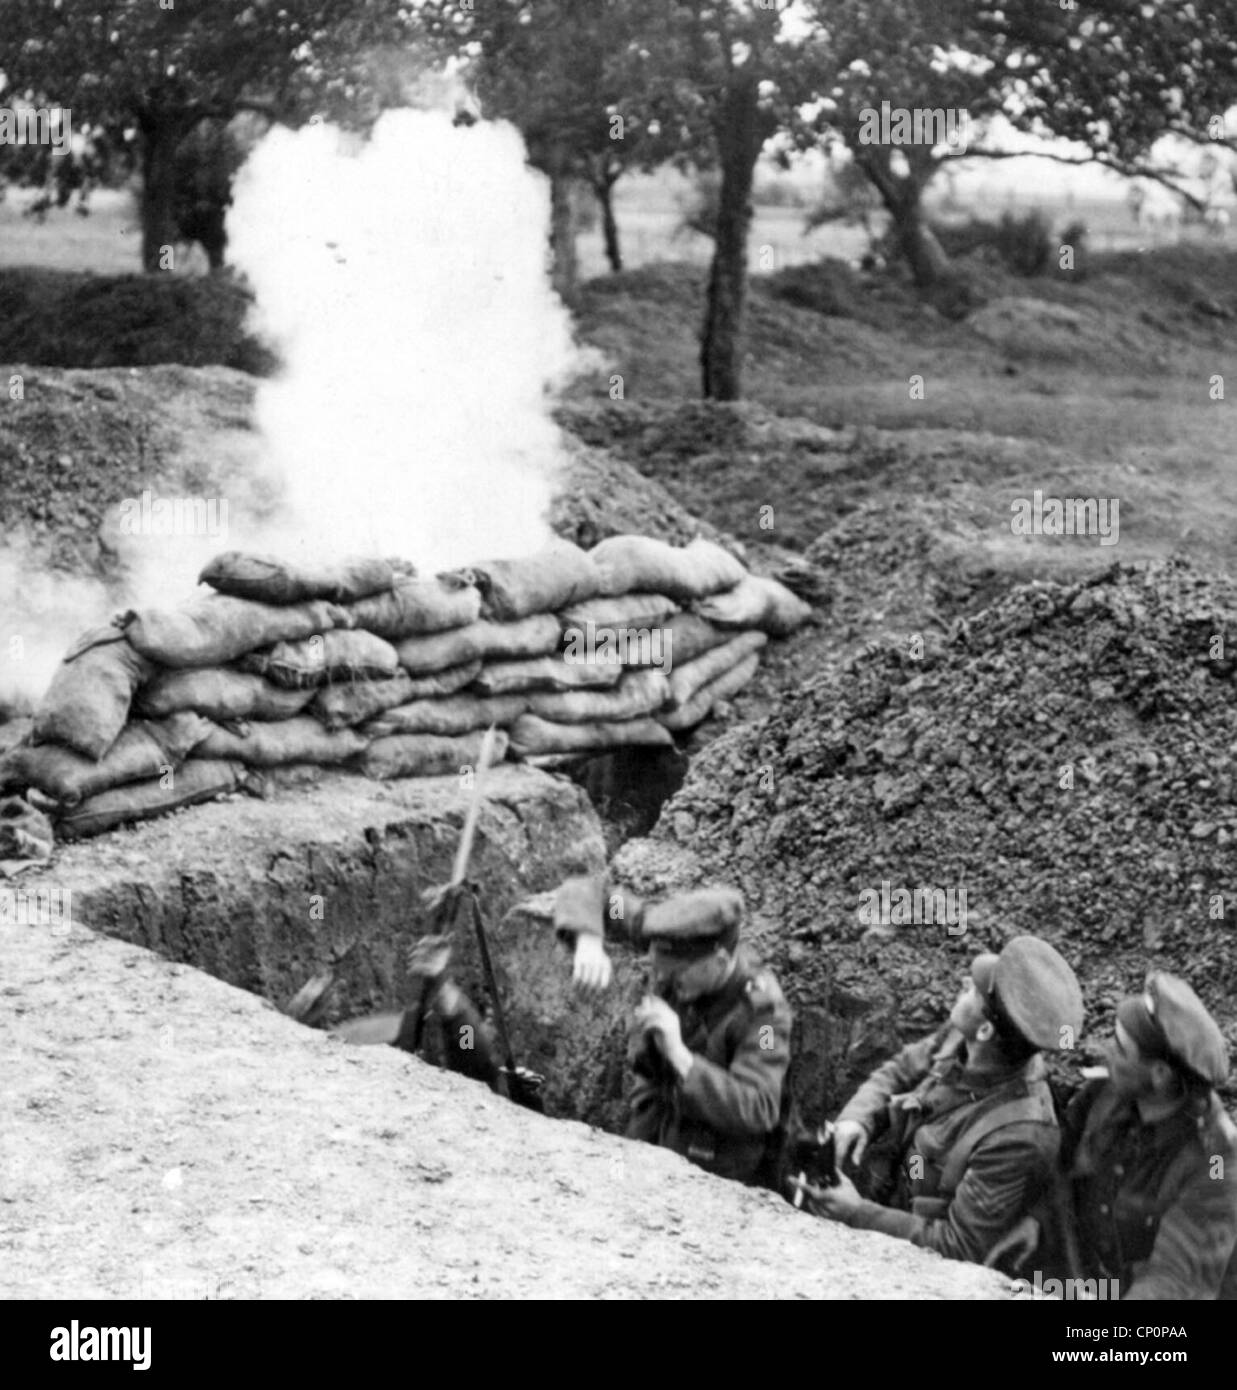 British soldiers in trench under fire during World War One - Stock Image